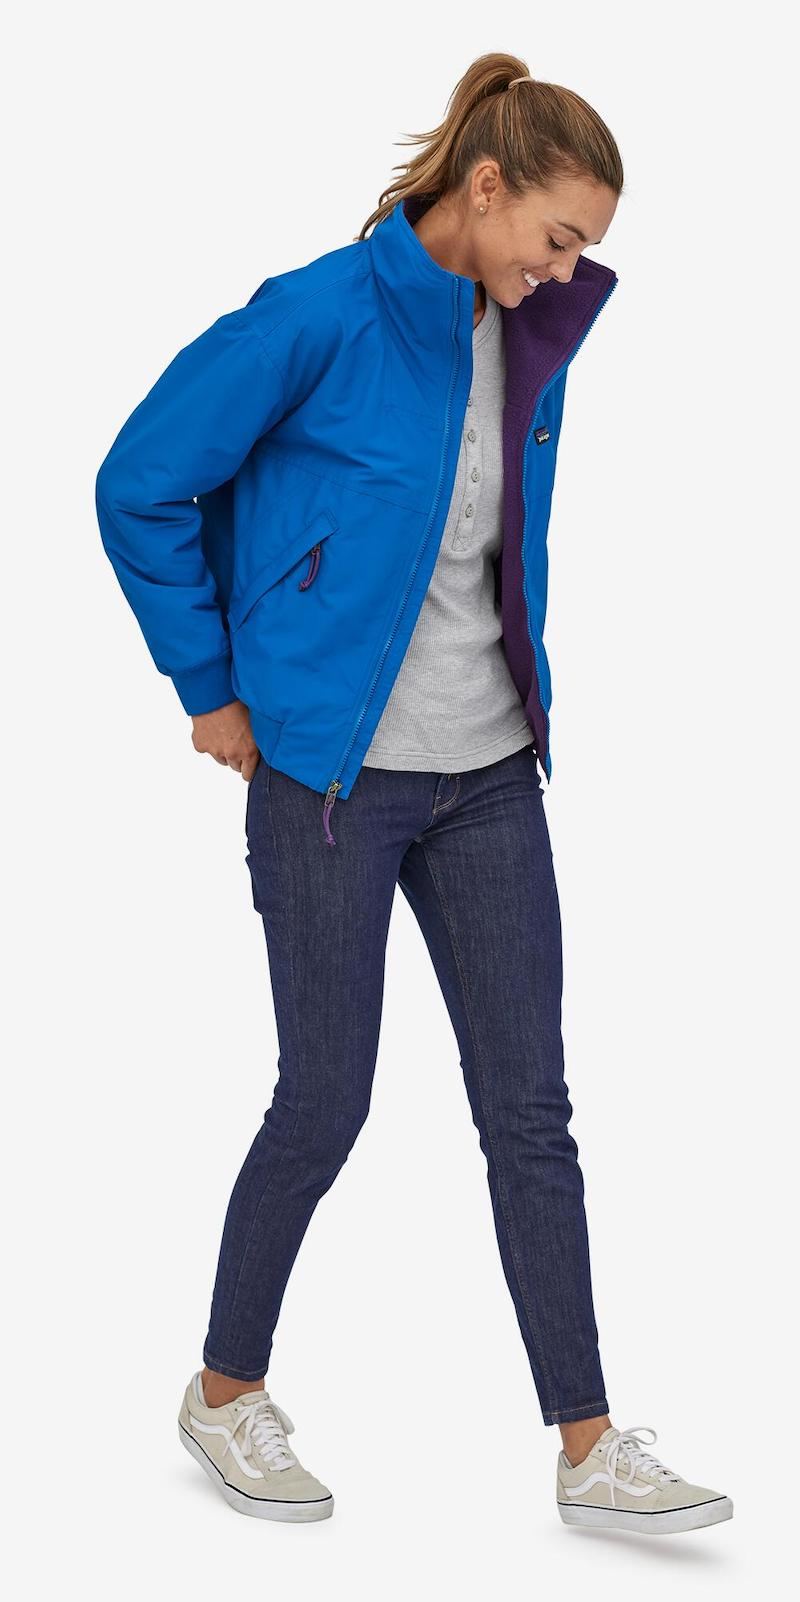 Patagonia coats for the whole family: An oversized bomber style for teen girls.